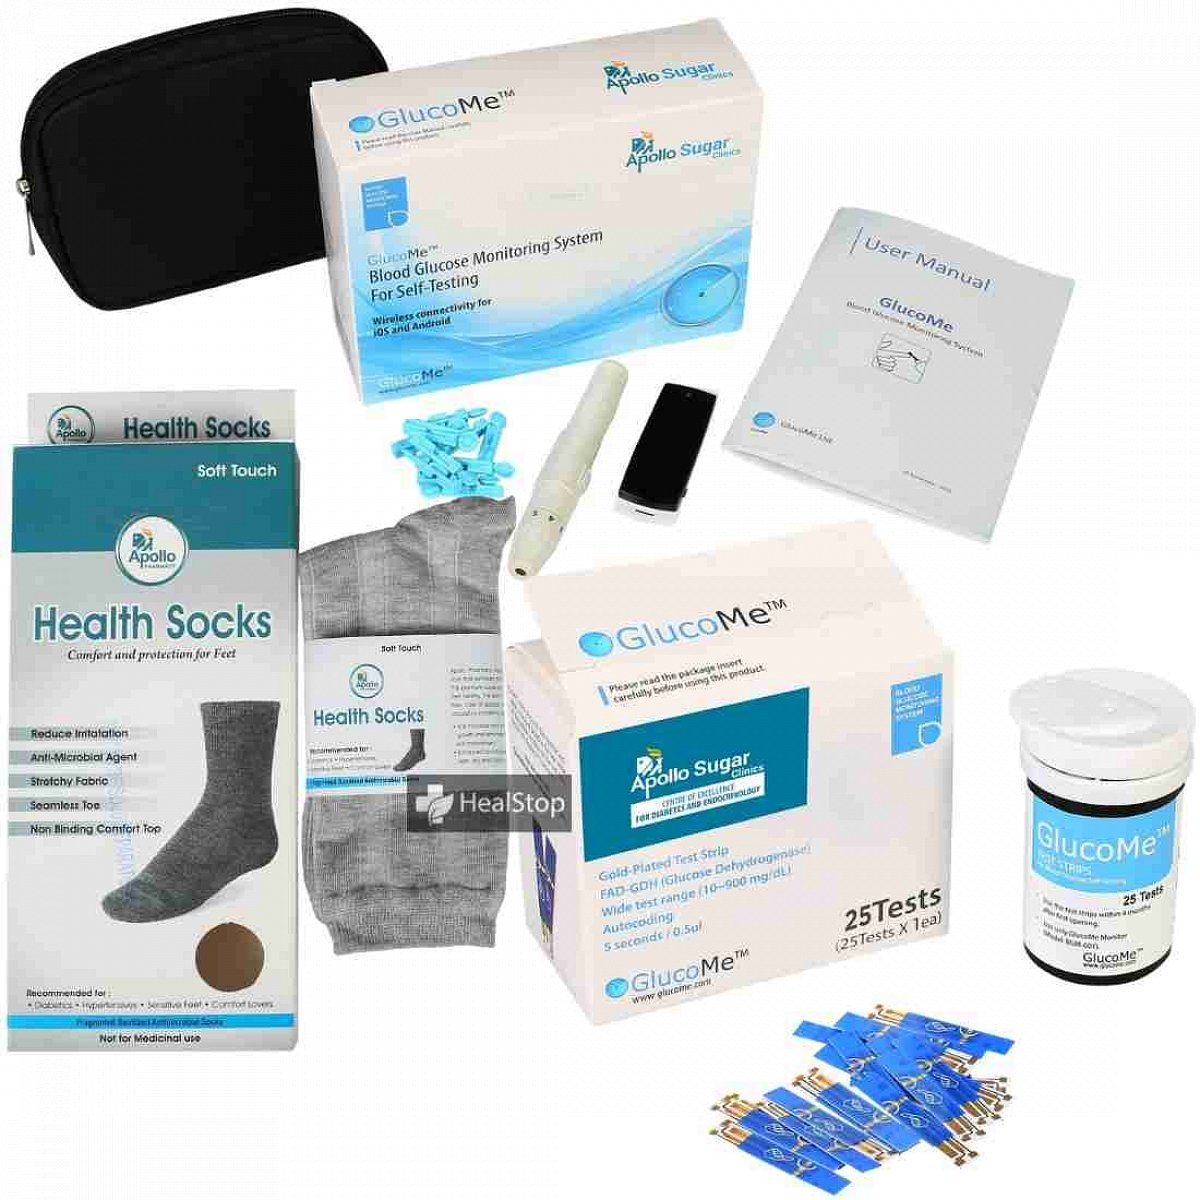 Smart Glucometer Kit With 25 Gold Plated Strips - Free Health Socks